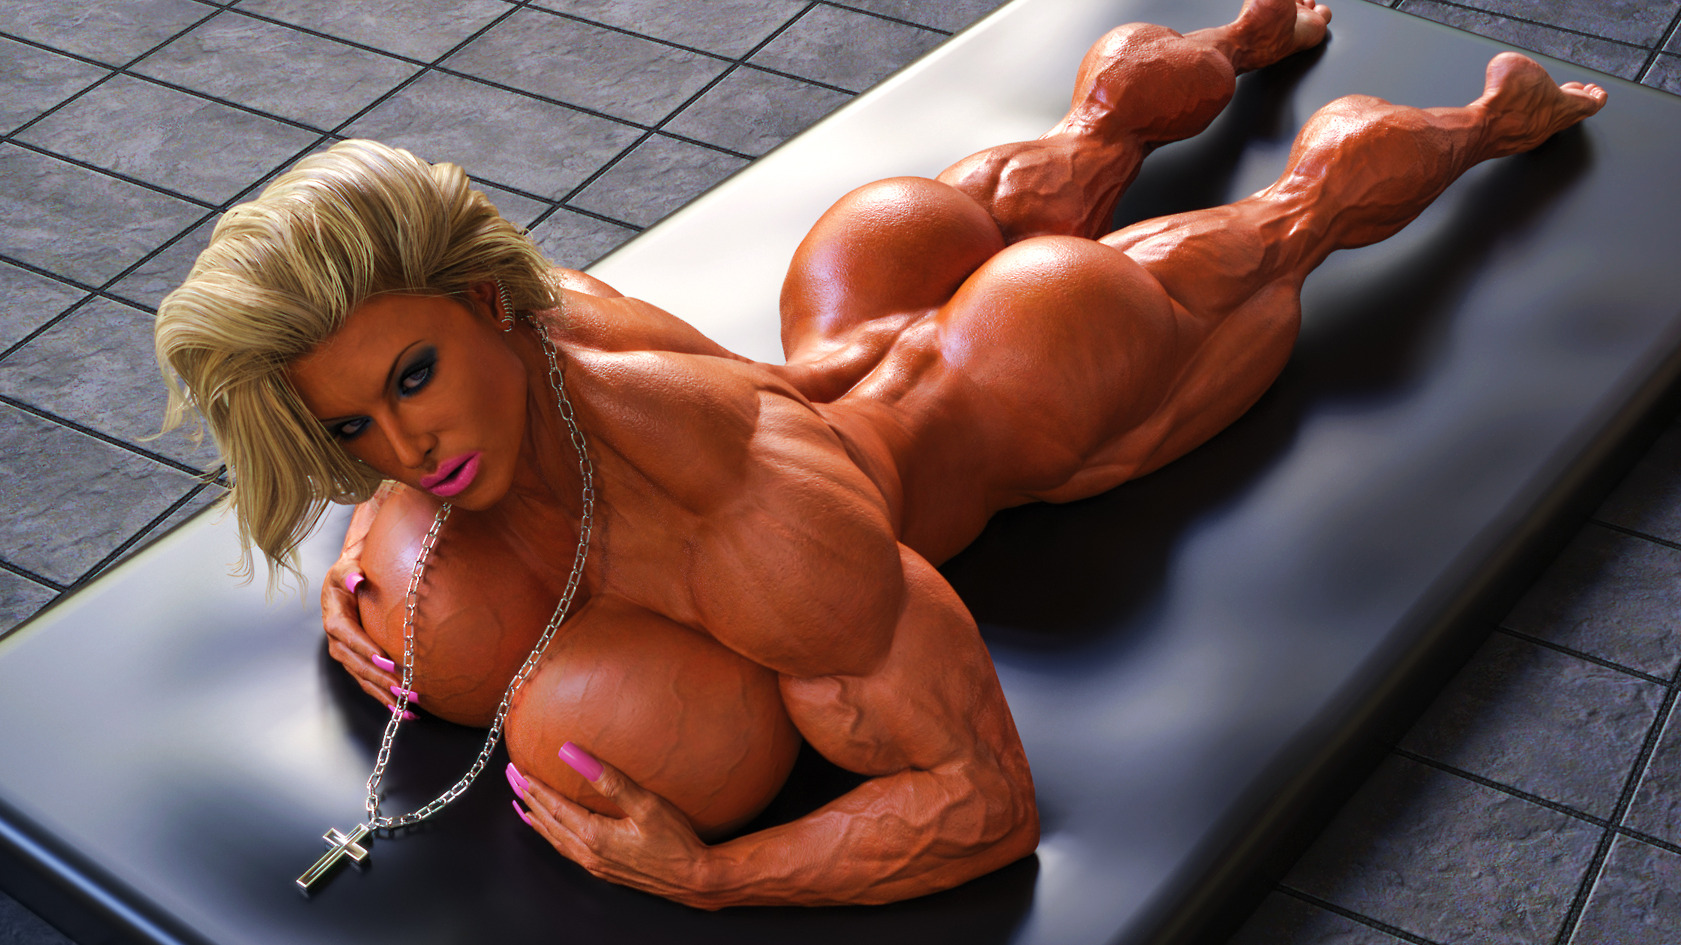 Muscle women 3d video adult image